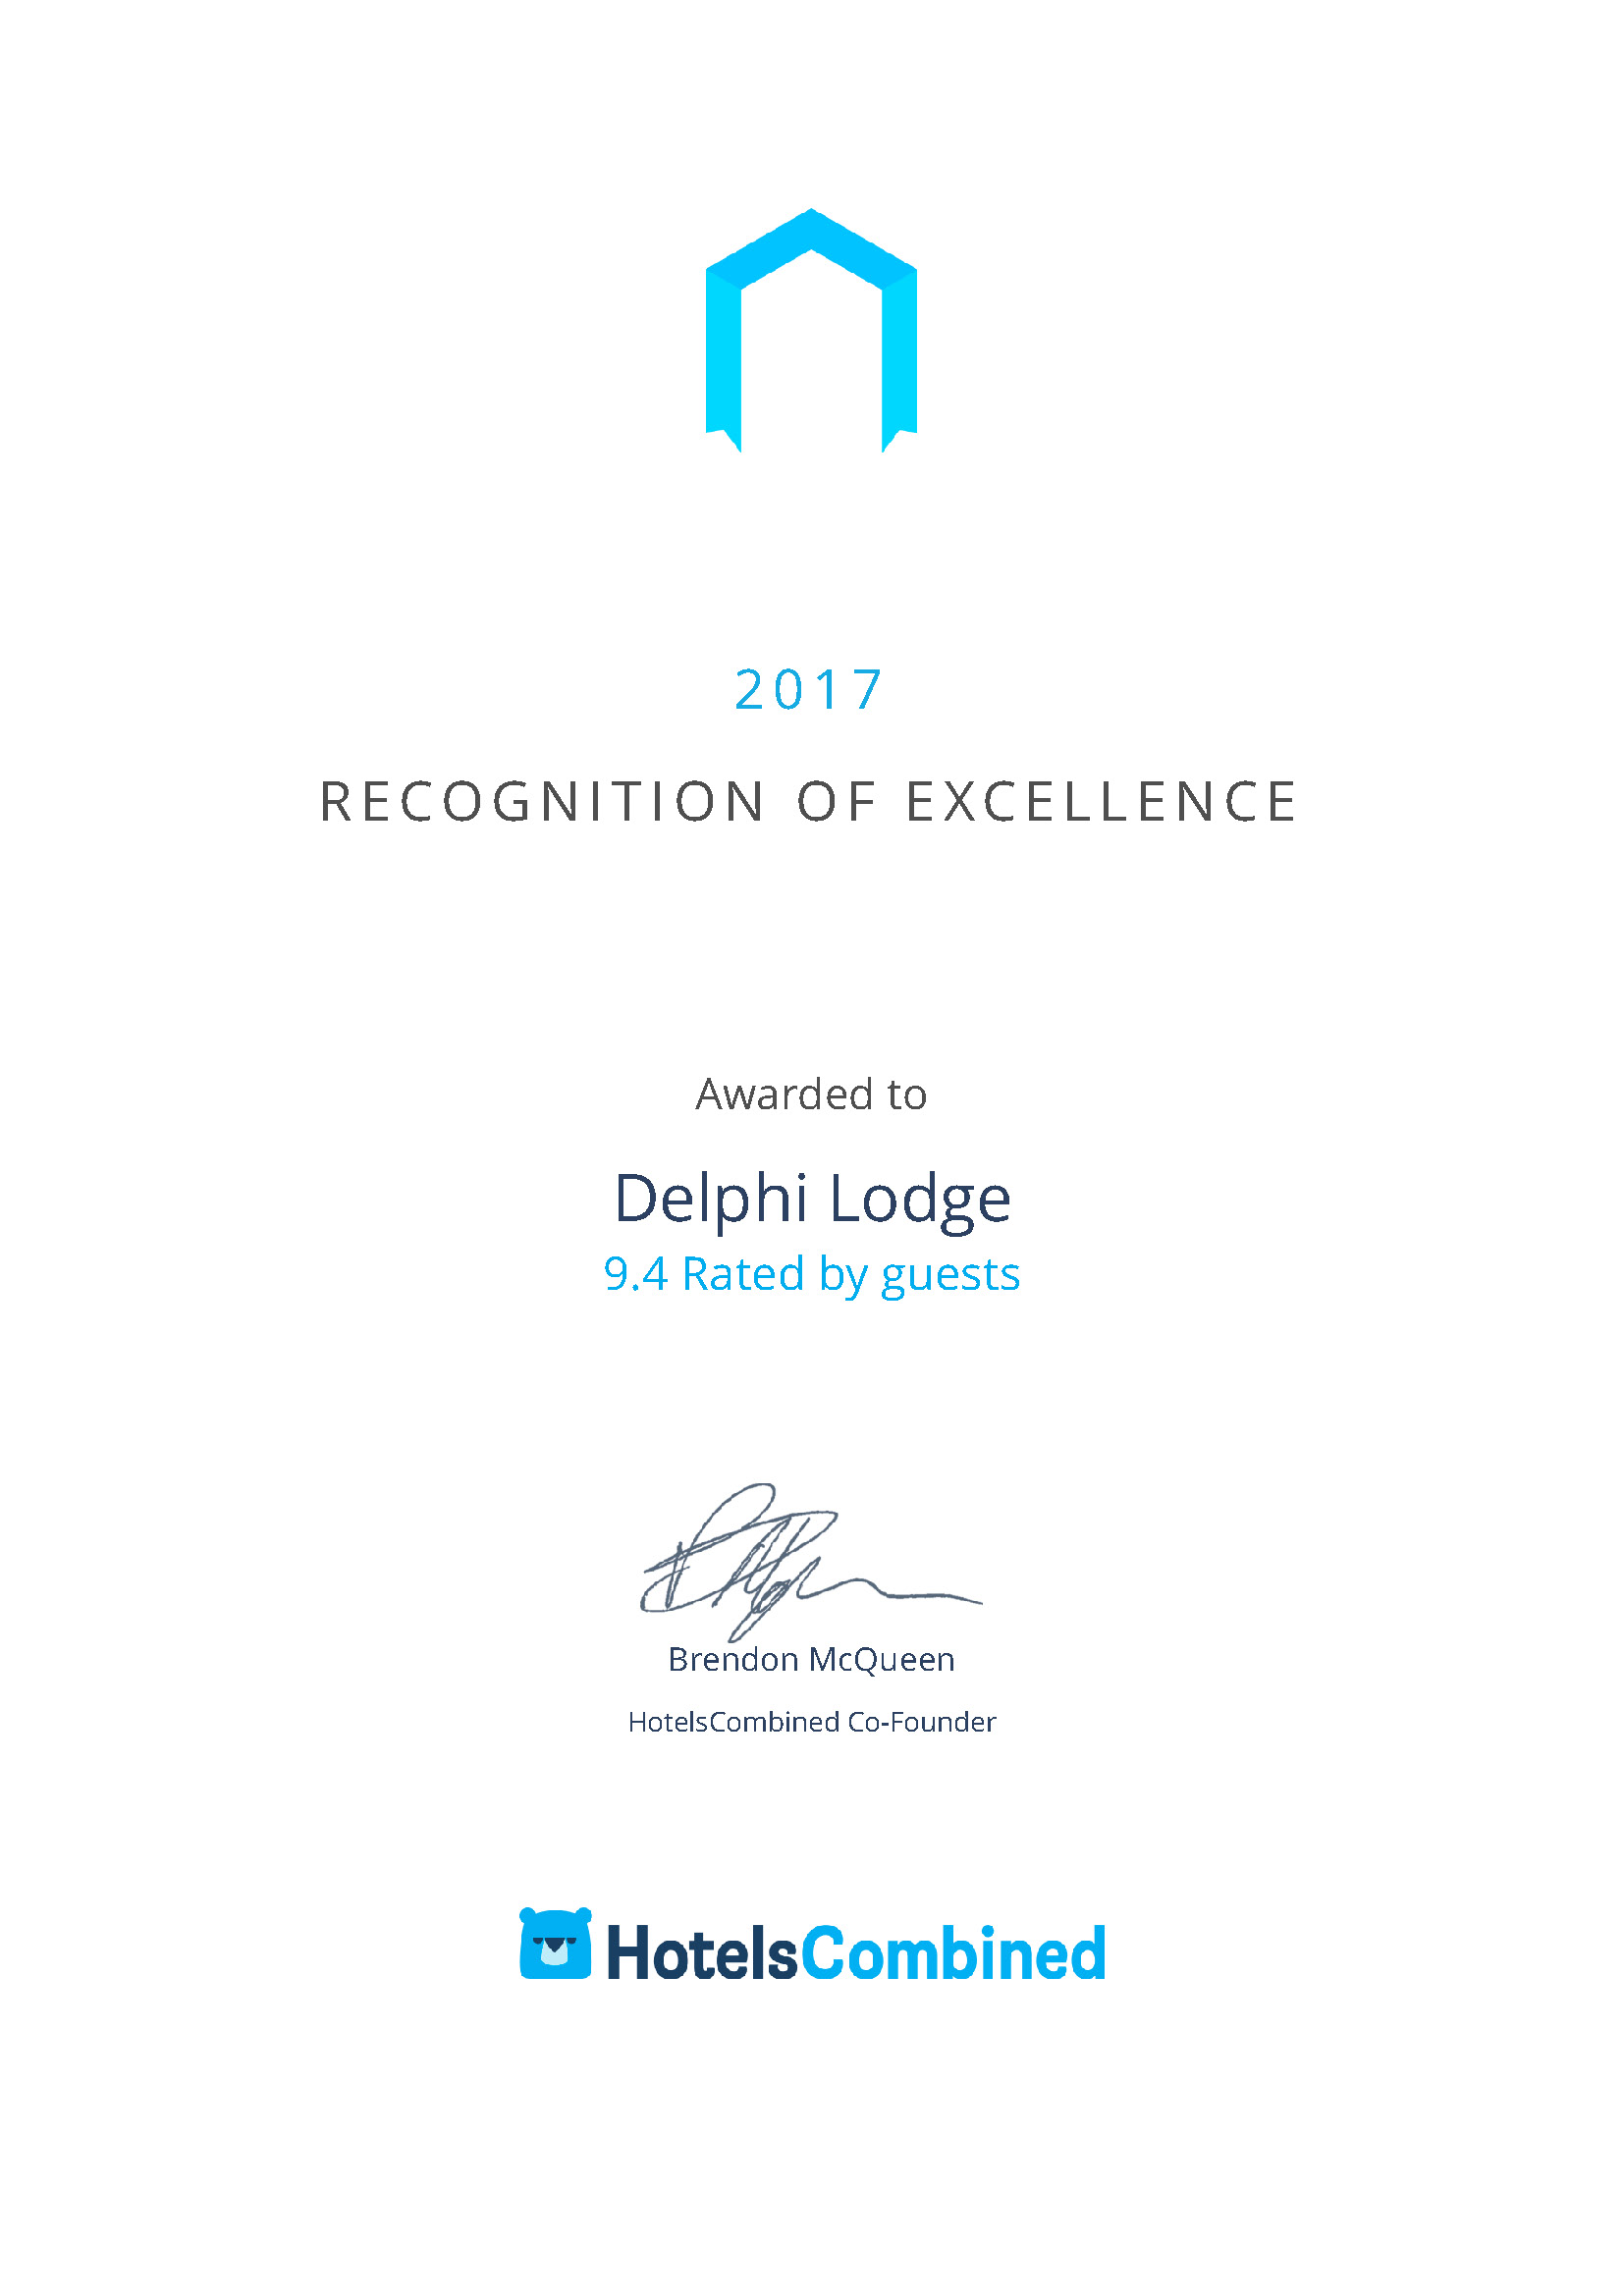 HotelsCombined recognize Delphi Lodge amongst the best